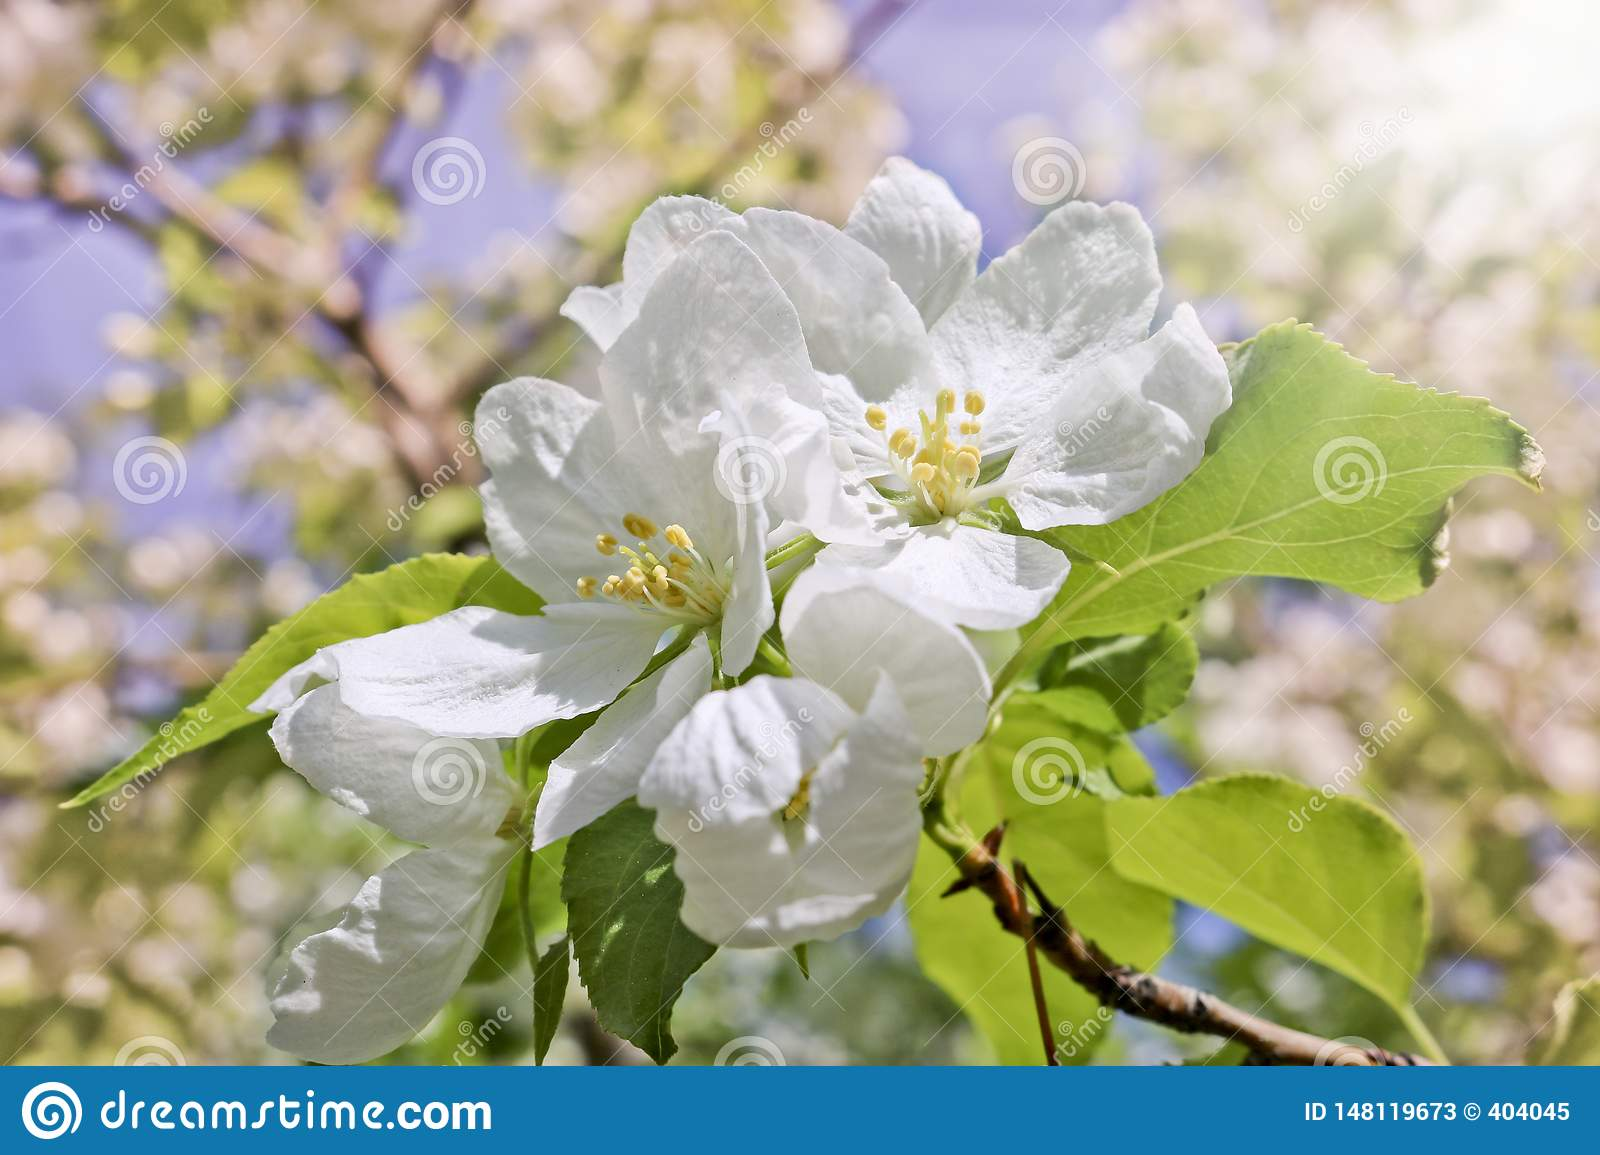 Floral spring background, branches of blossoming apple trees with soft focus in sun rays.